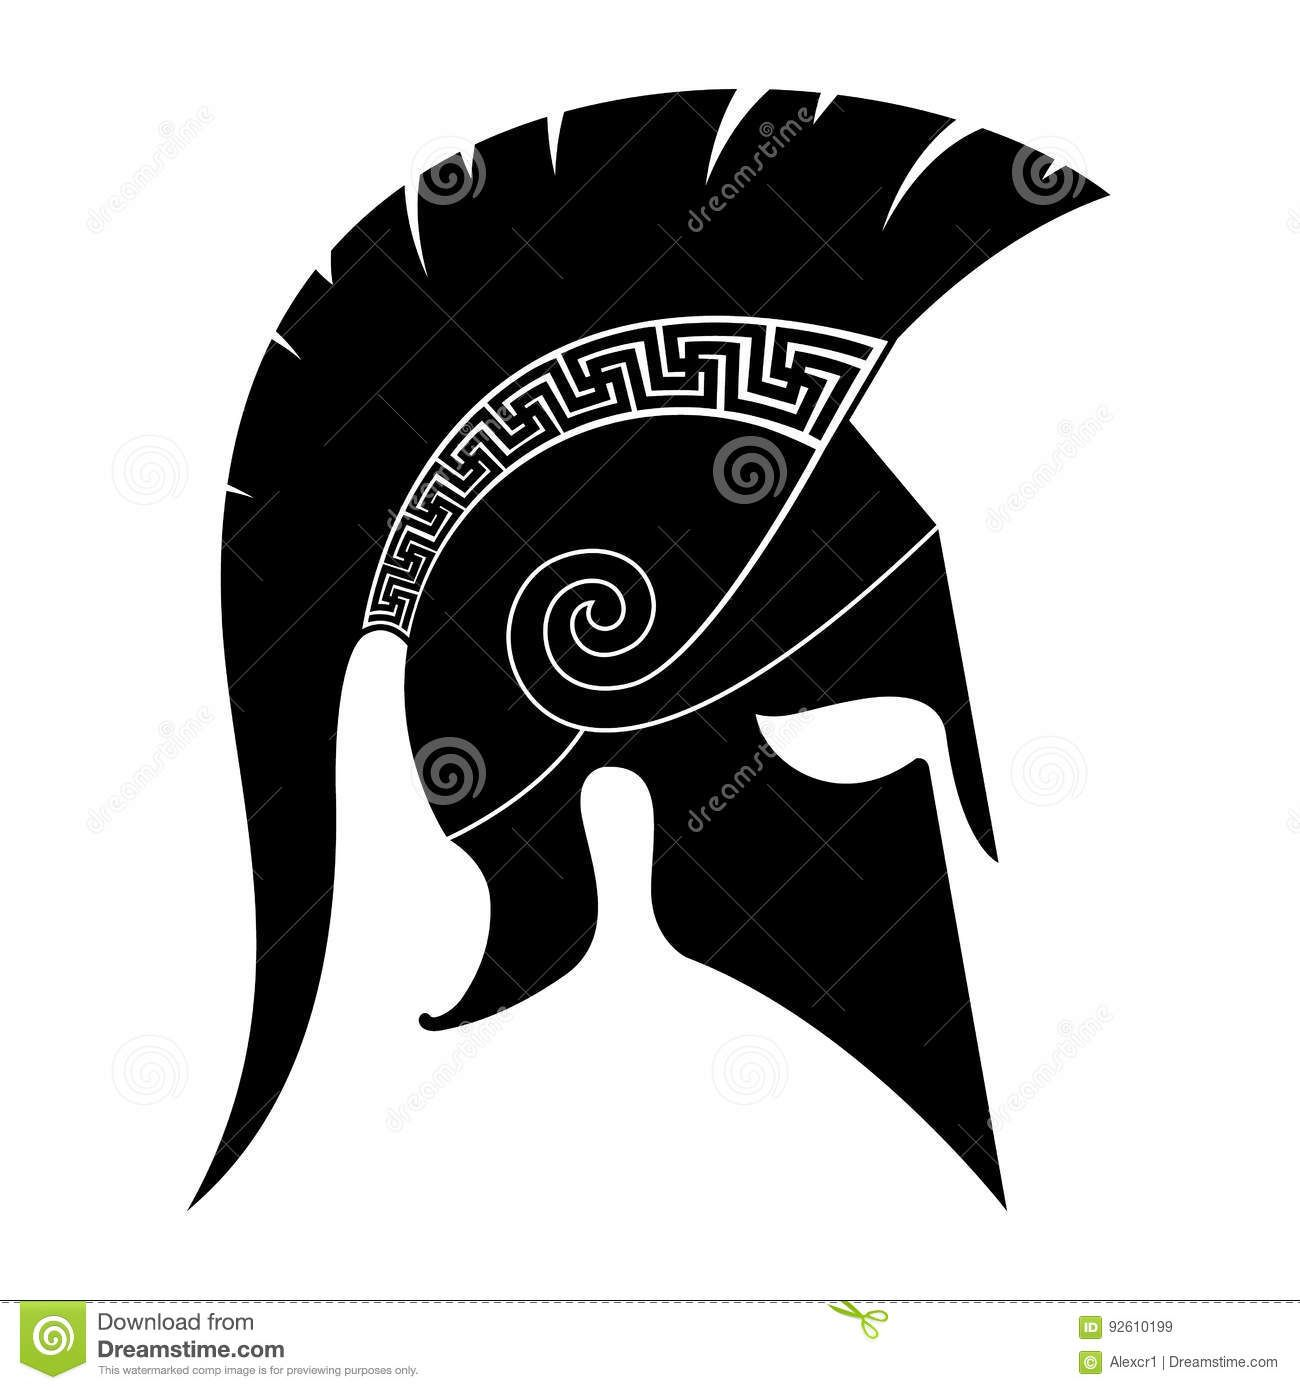 Spartan Helmet Download From Over 59 Million High Quality Stock Photos Images Vectors Sign Up For Free Spartan Helmet Tattoo Spartan Tattoo Spartan Helmet